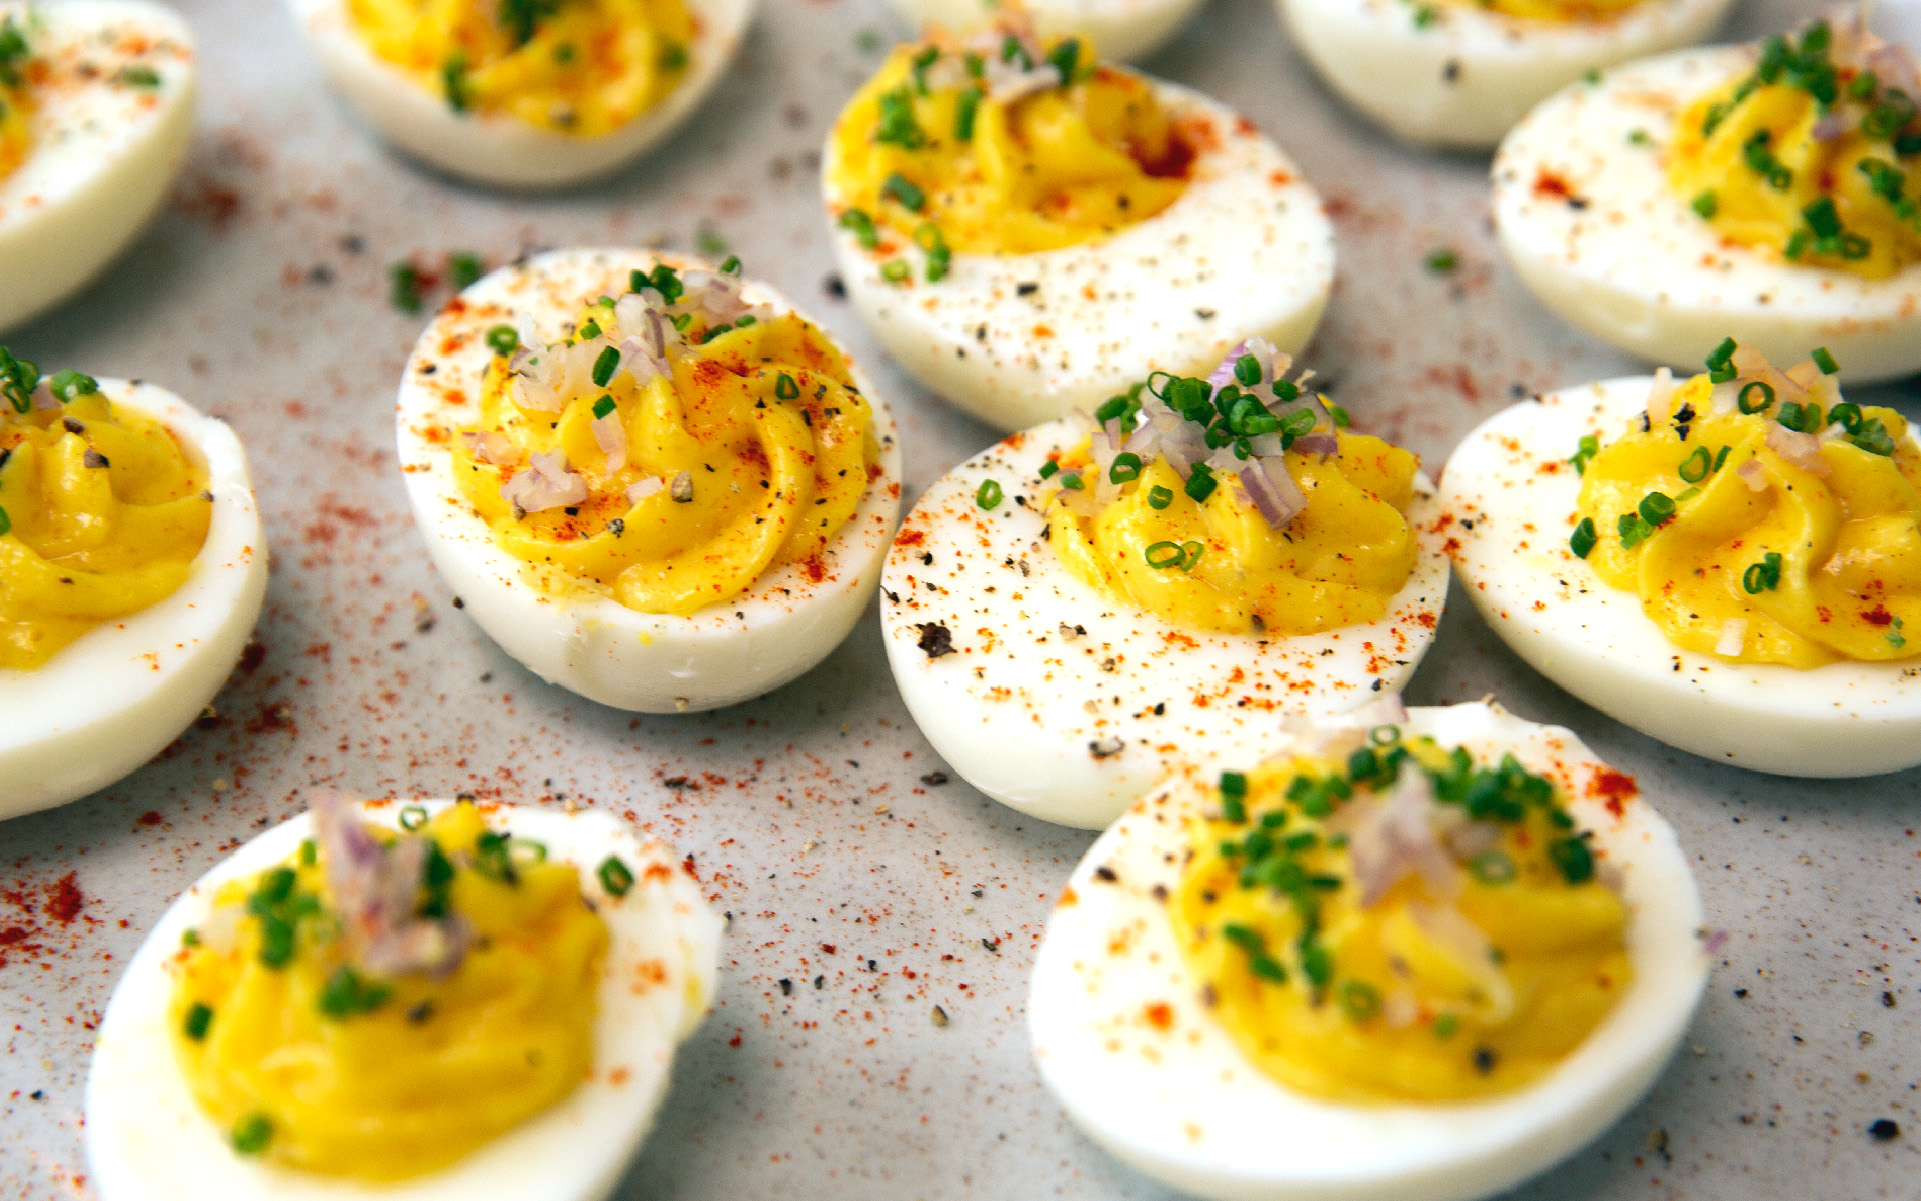 Recipe: How to Make Cannabis-Infused Devilled Eggs